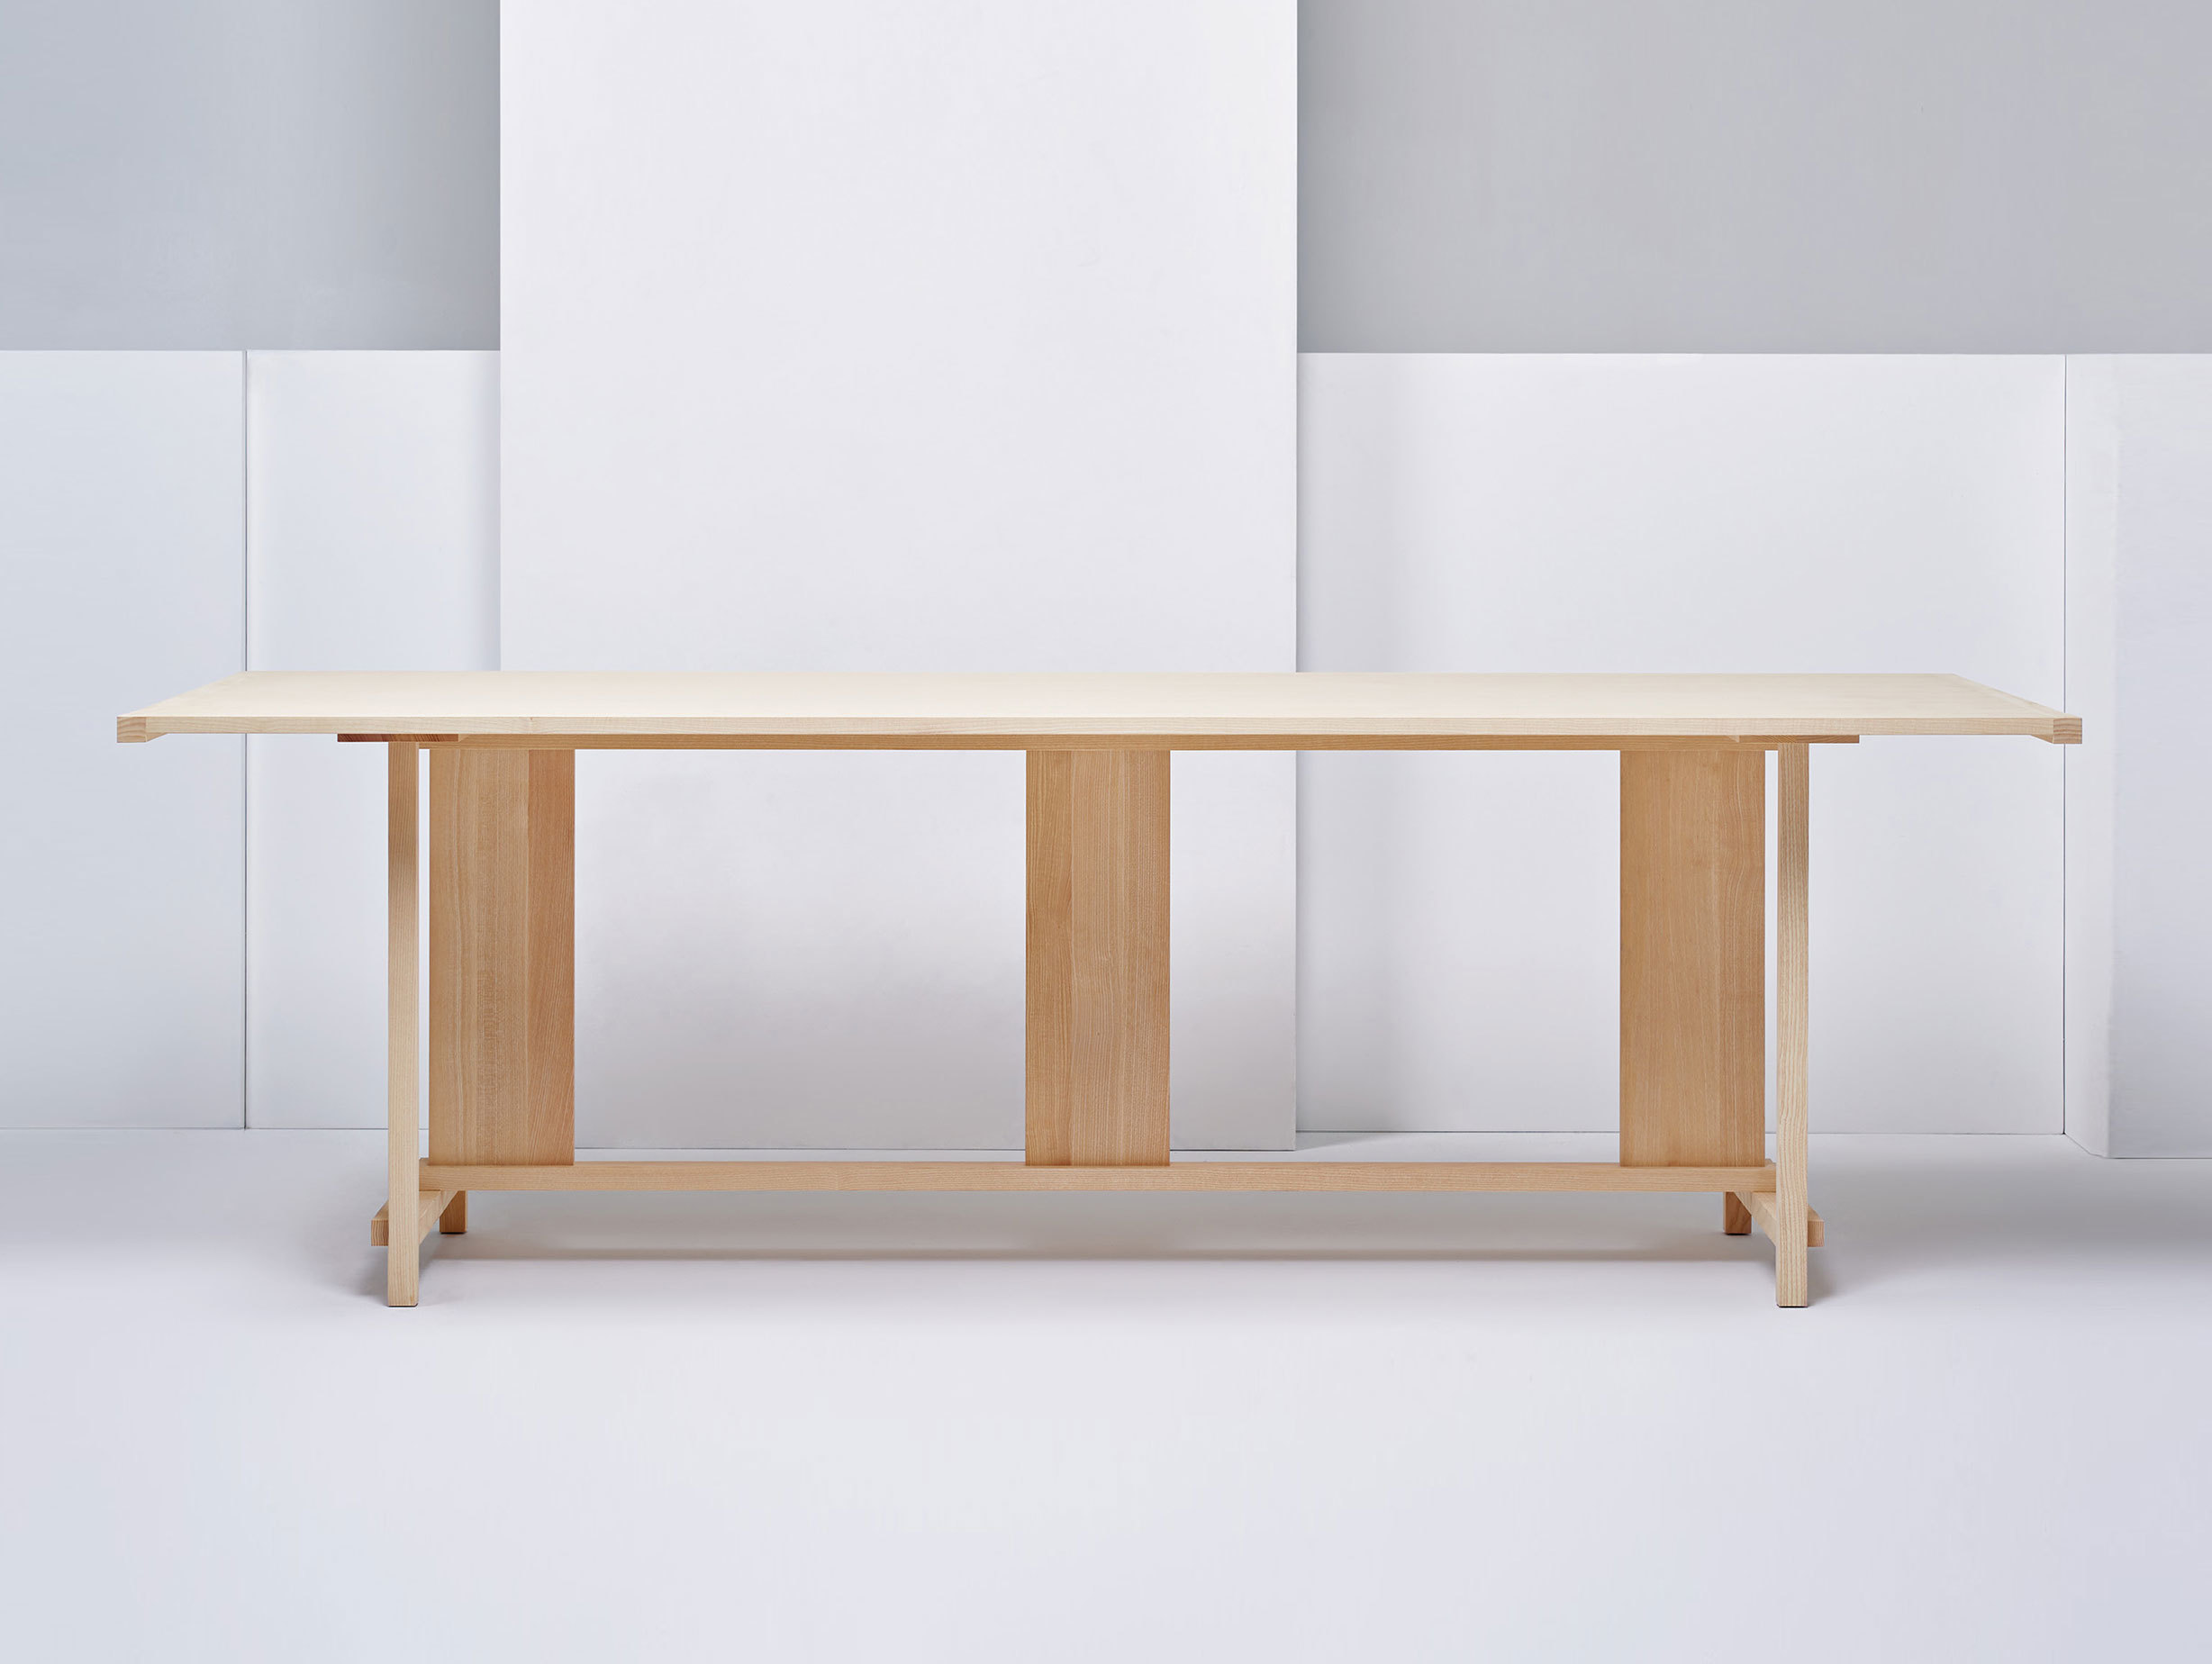 Mattiazzi Clerici Table 2 Konstantin Grcic